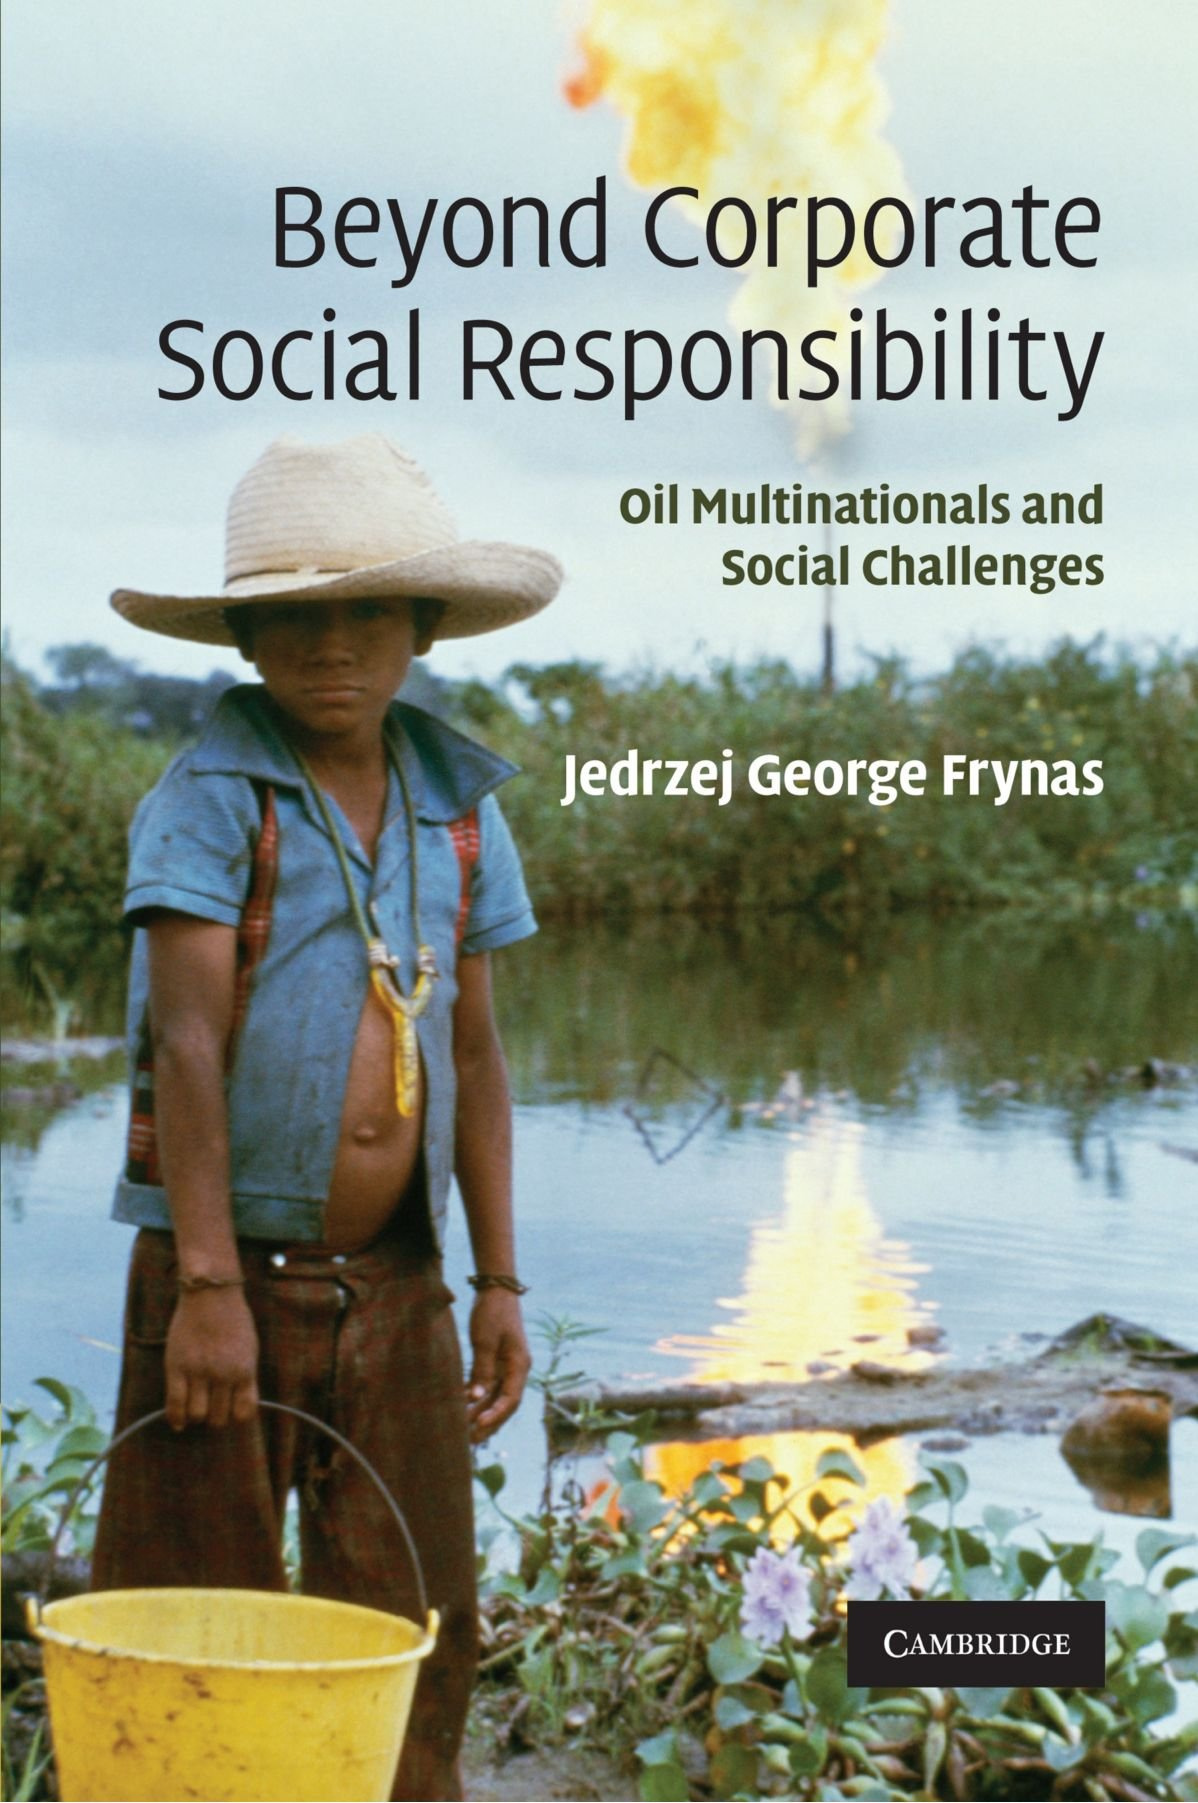 Beyond Corporate Social Responsibility: Oil Multinationals and Social Challenges ebook